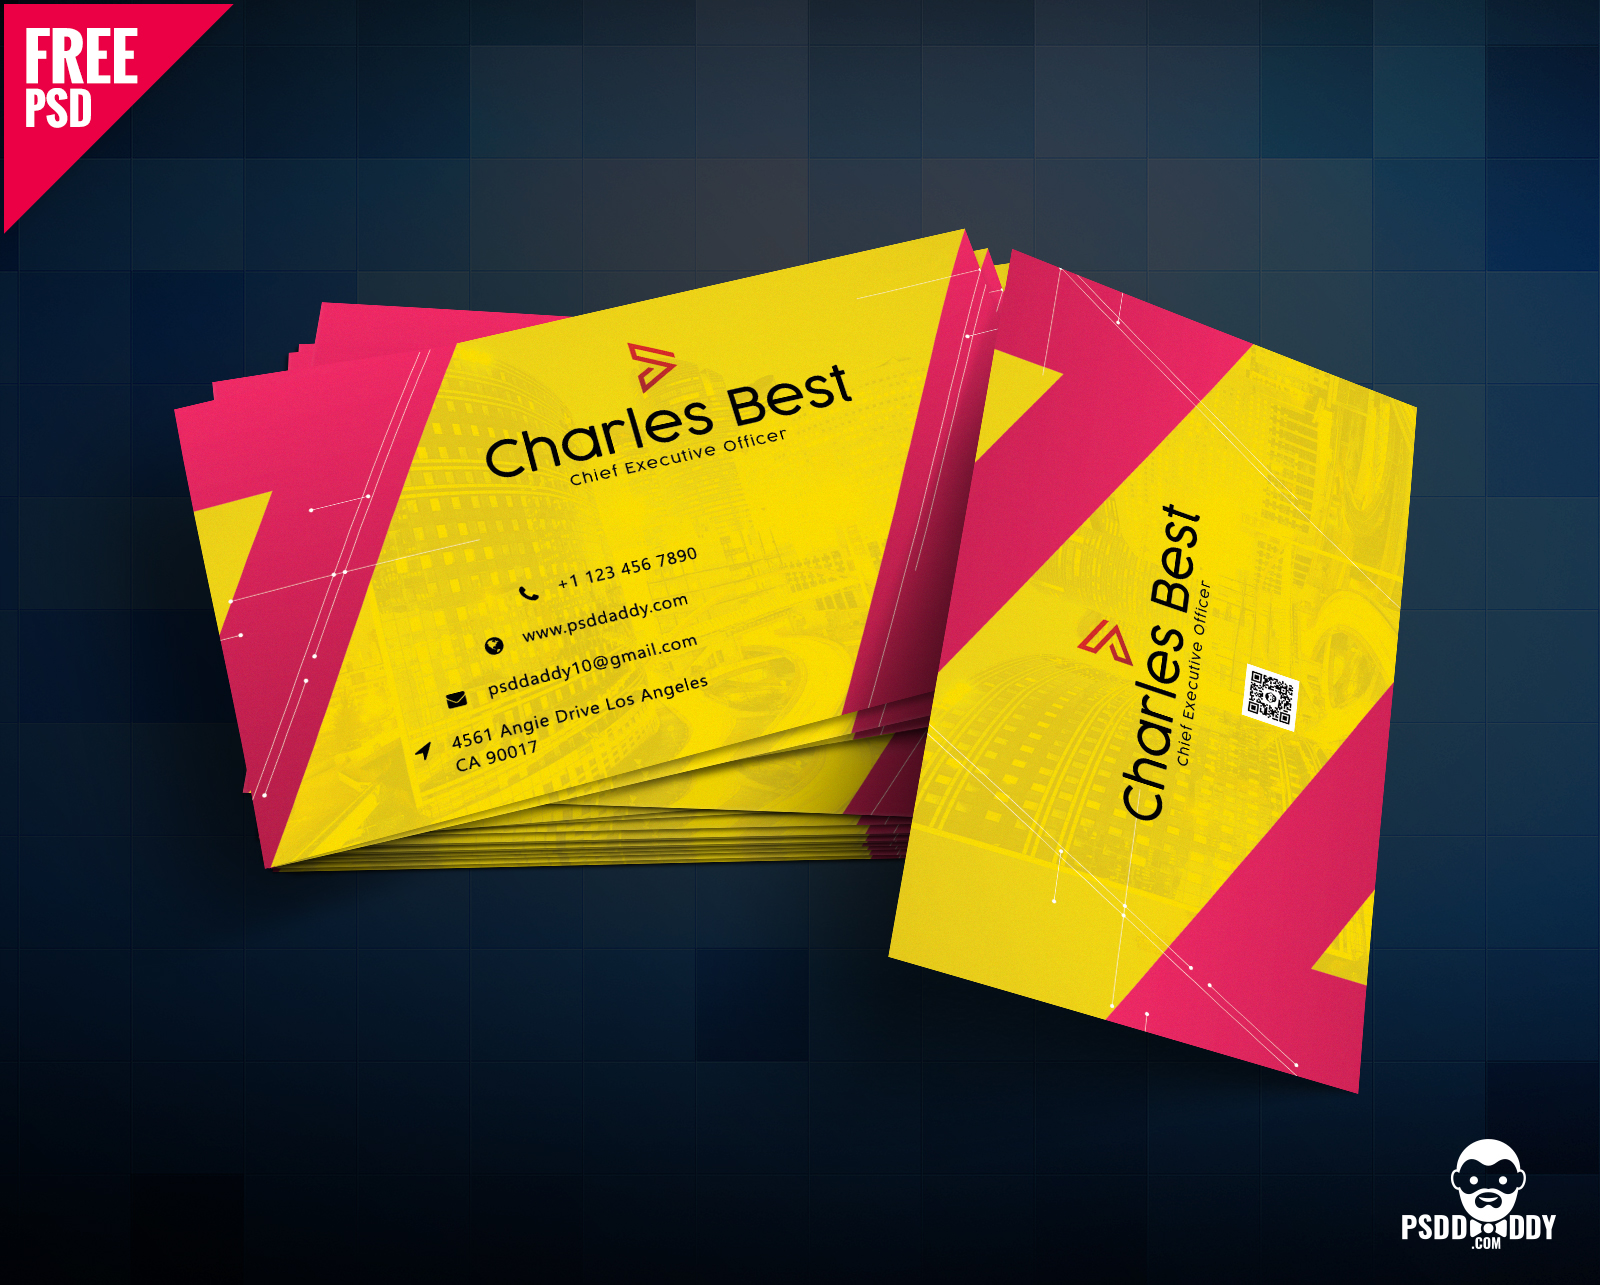 100 free business card psd templates creative business card template psd free download fbccfo Choice Image